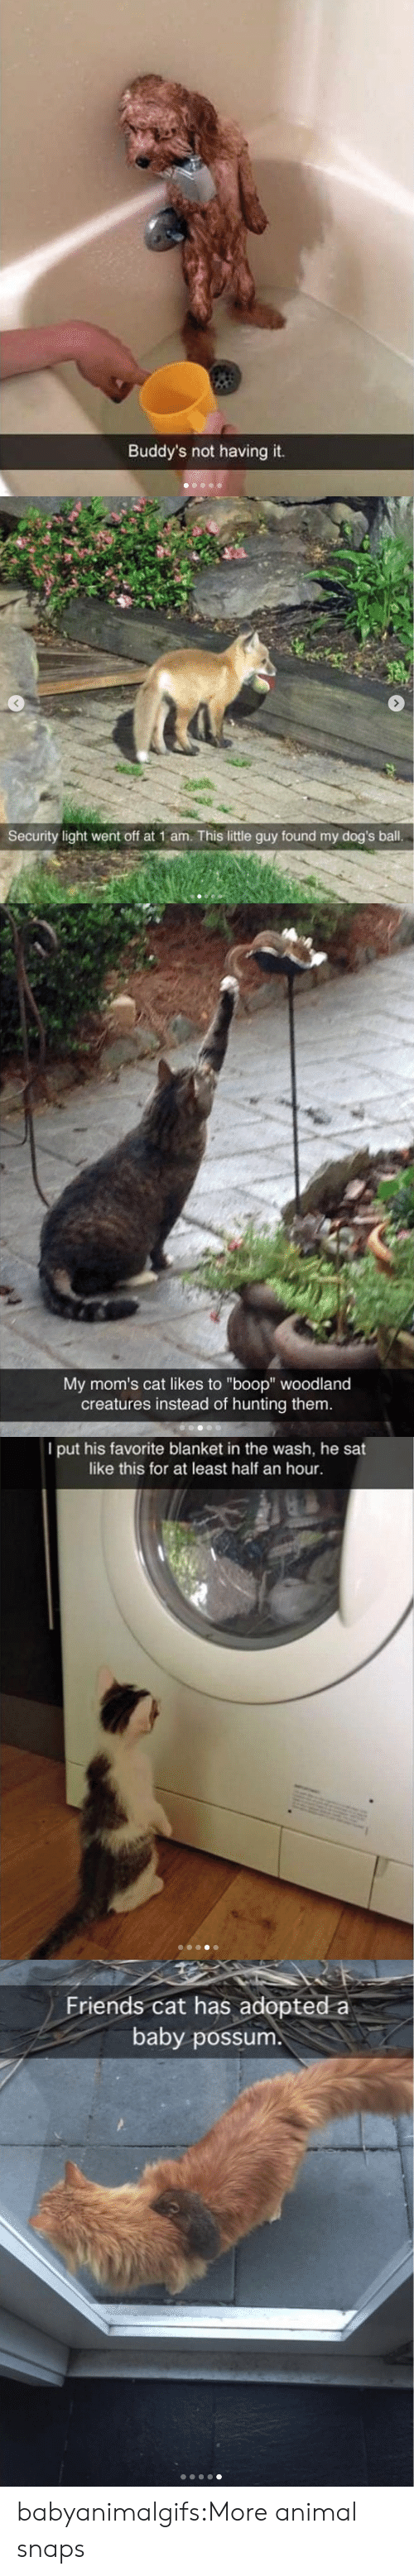 """buddys: Buddy's not having it.   Security light went off at 1 am. This little guy found my dog's ball.   My mom's cat likes to """"boop"""" woodland  creatures instead of hunting them.   I put his favorite blanket in the wash, he sat  like this for at least half an hour.   Friends cat has adopted a  baby possum babyanimalgifs:More animal snaps"""